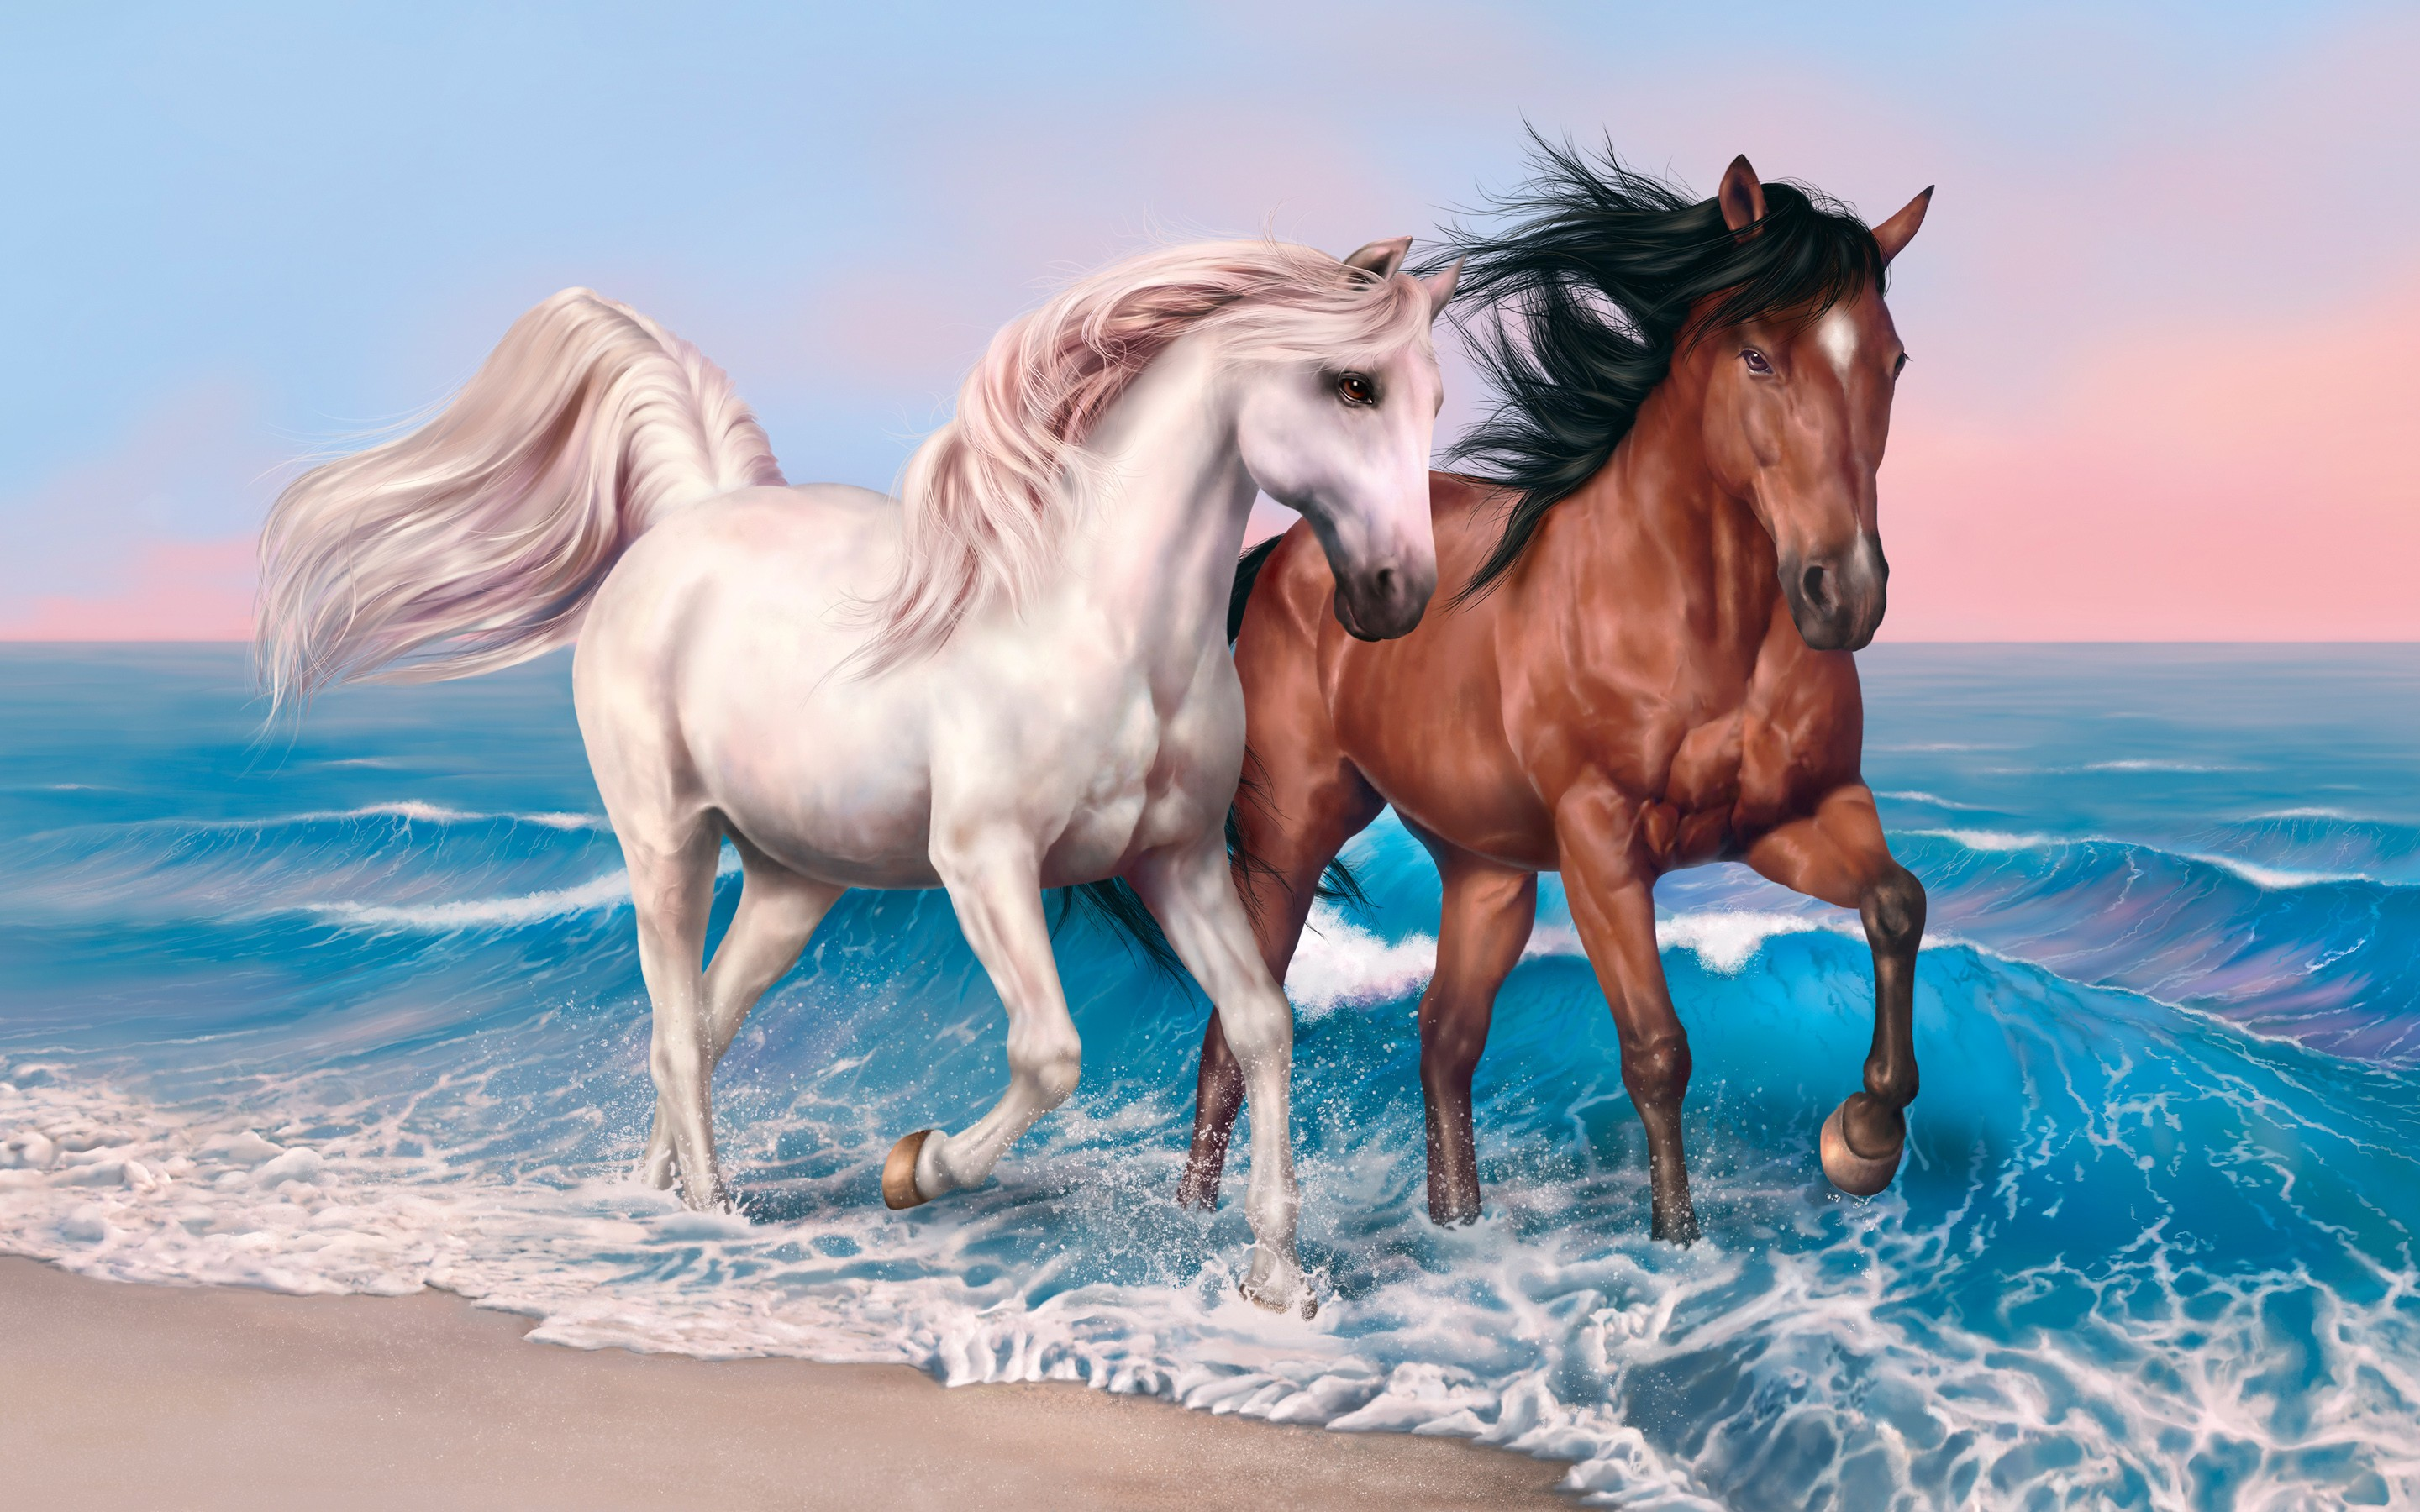 Wallpaper Horses 4k HD Run Sea Ocean Sunset White